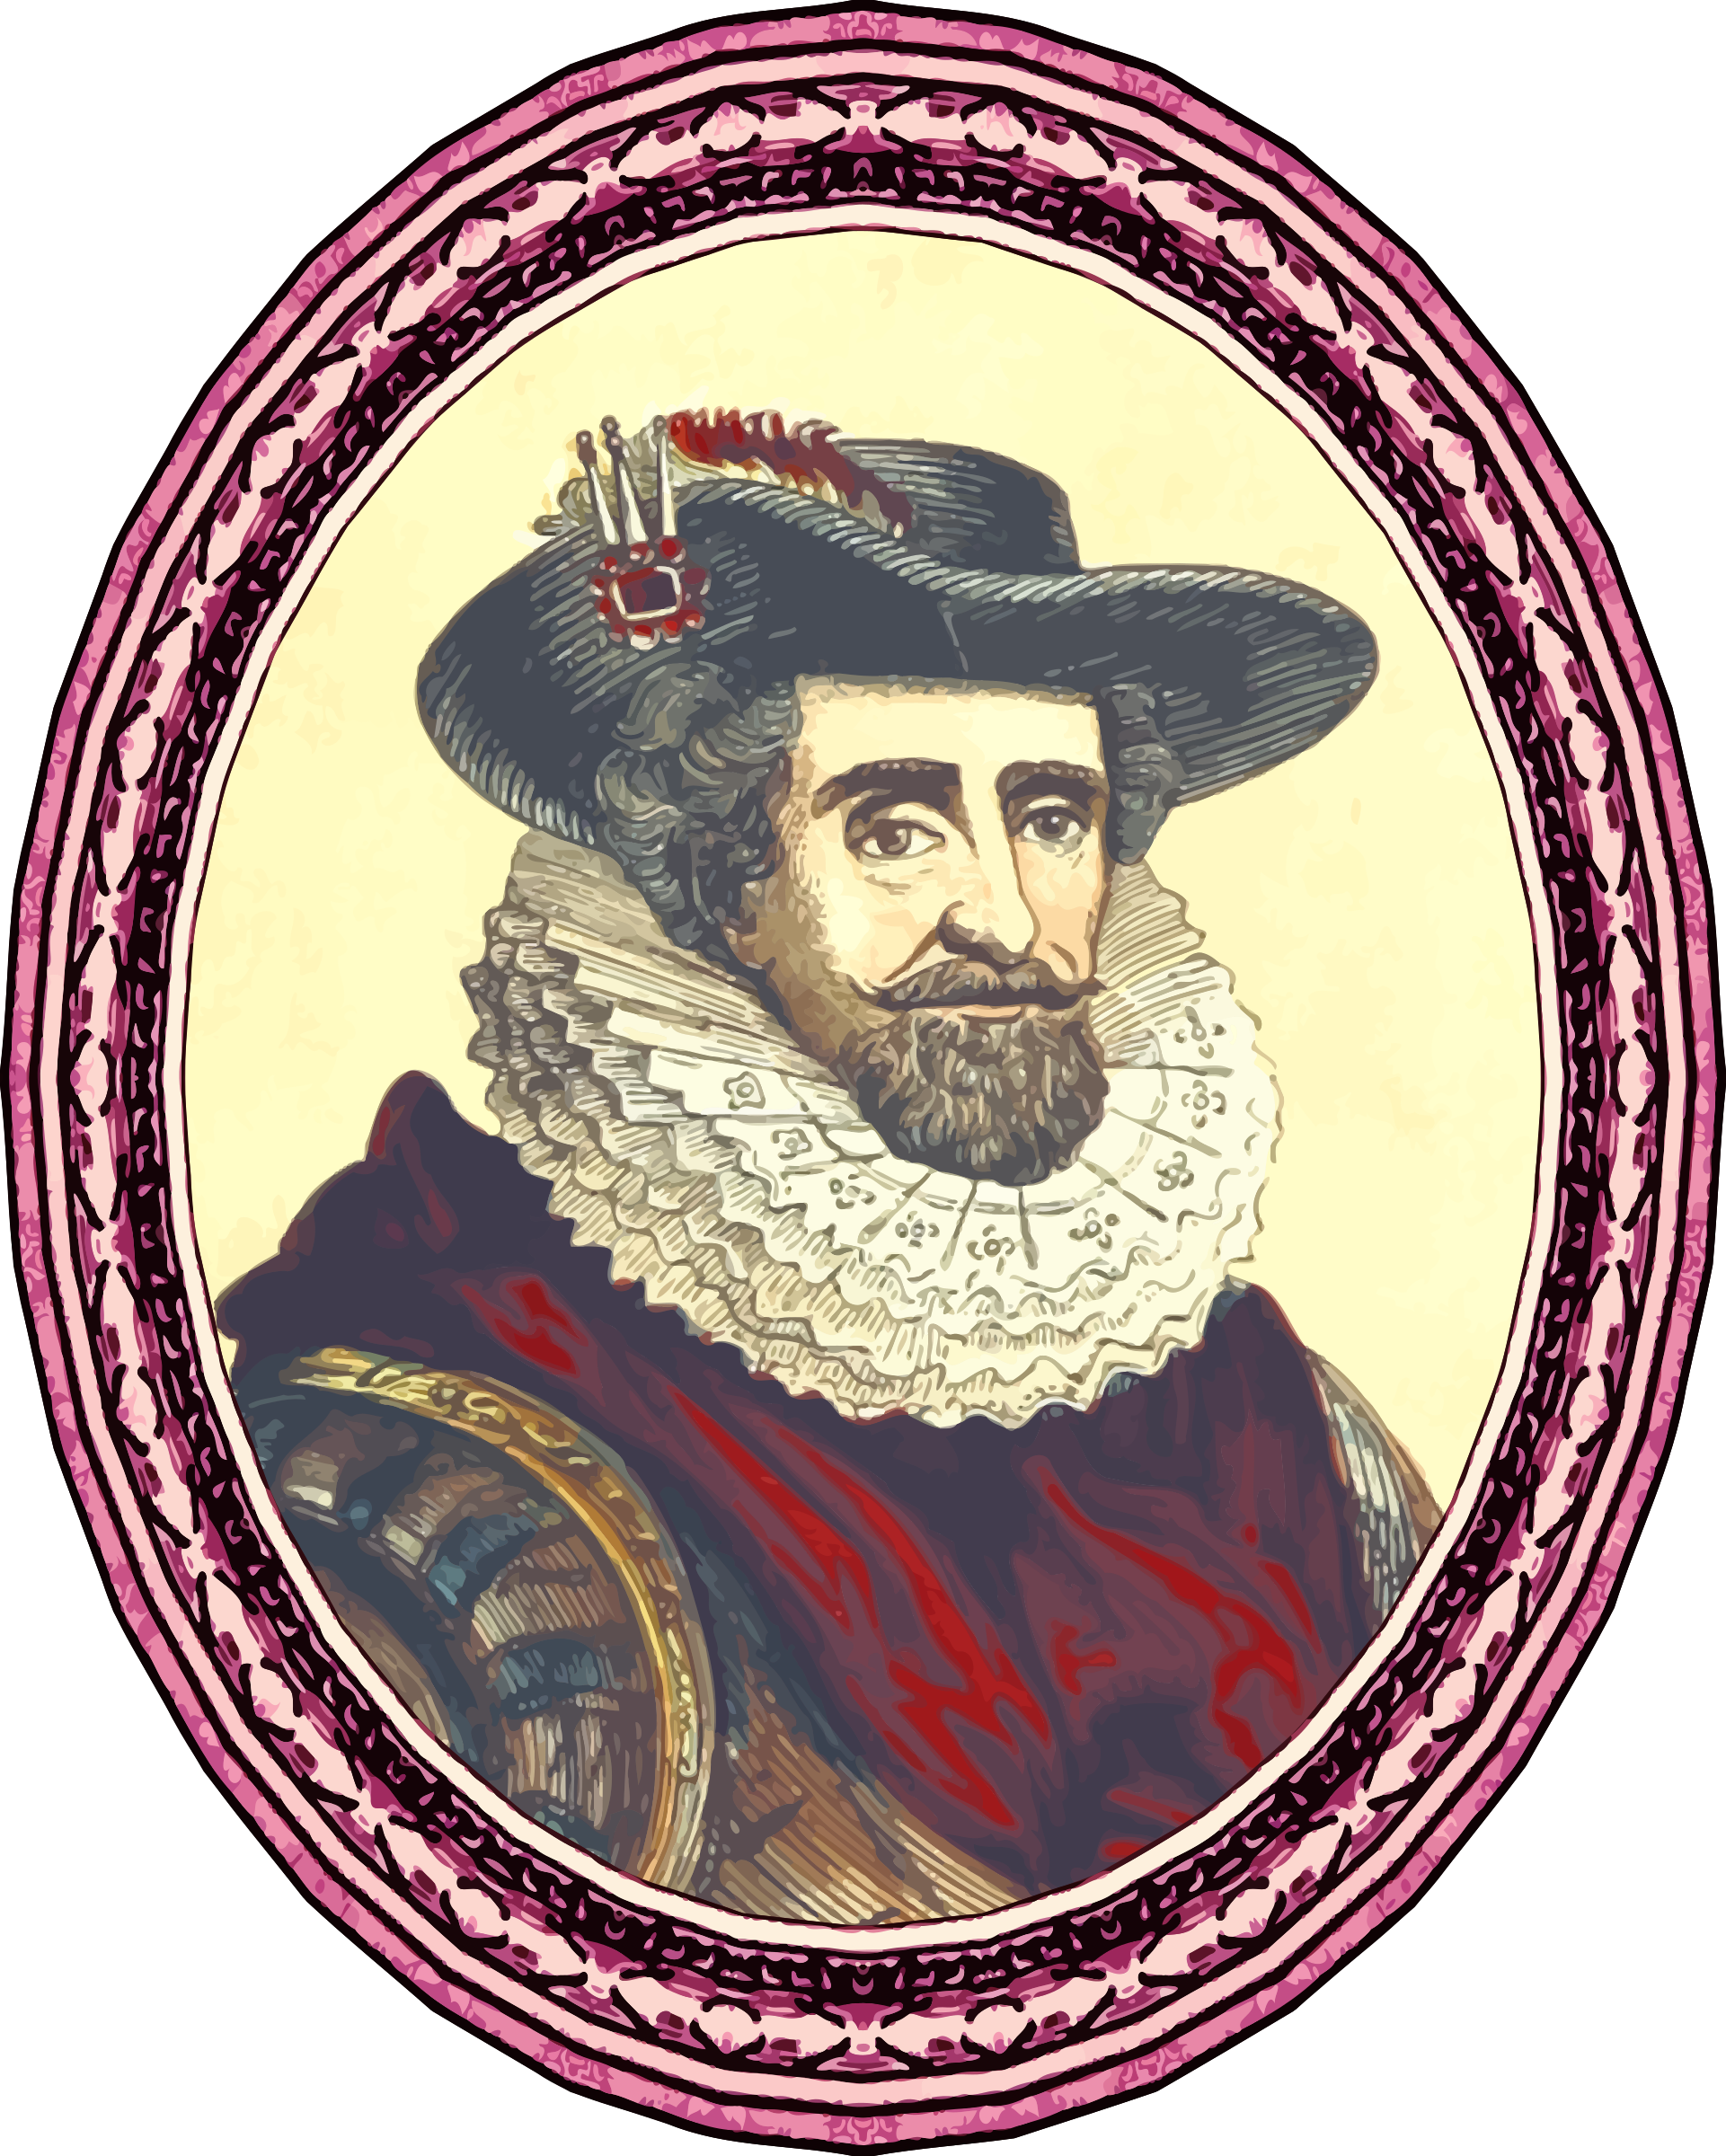 King James I (framed) by Firkin